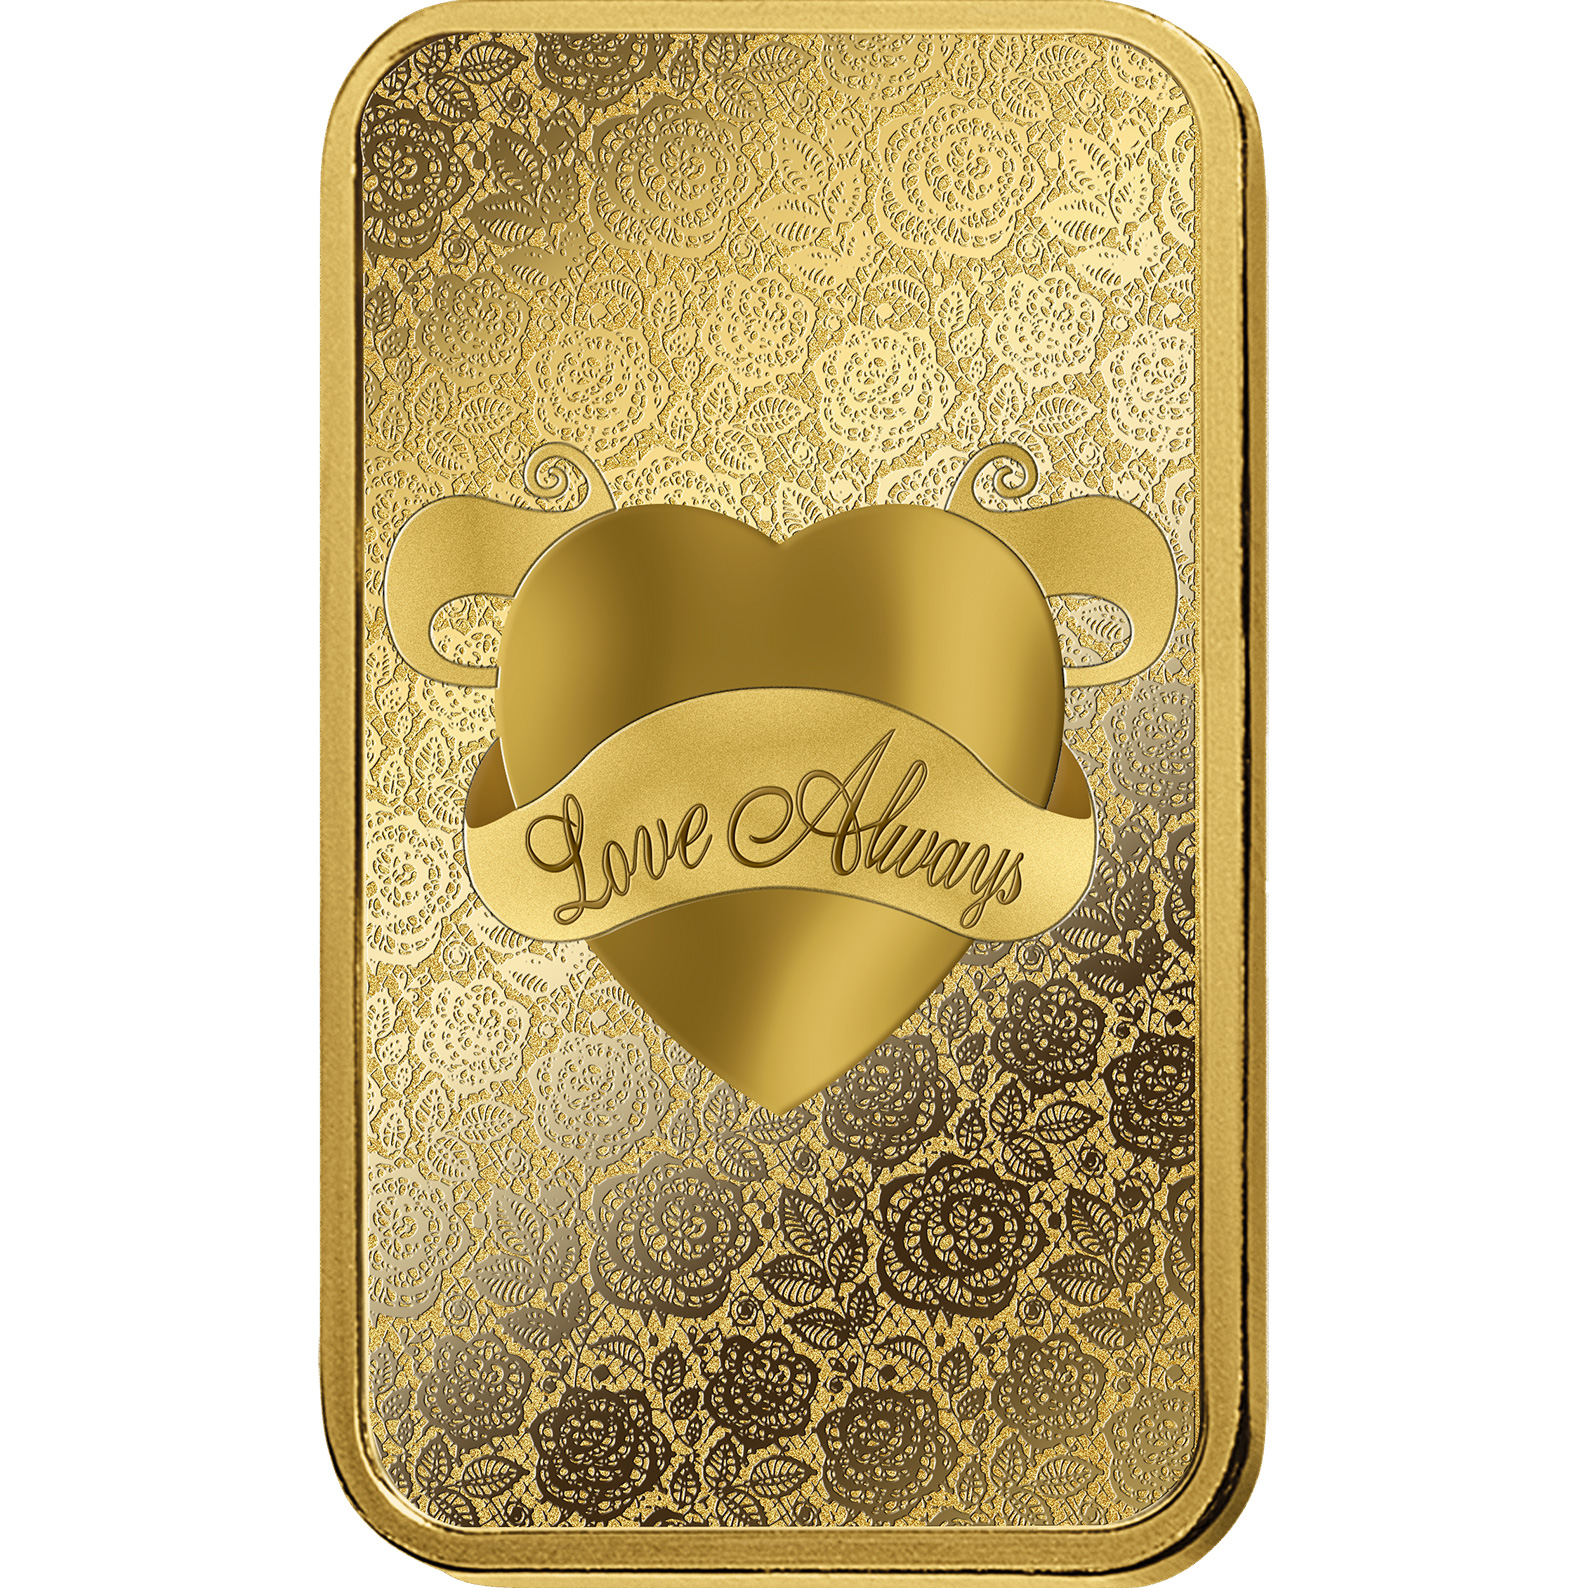 1 oncia lingottino d'oro - PAMP Suisse Love Always